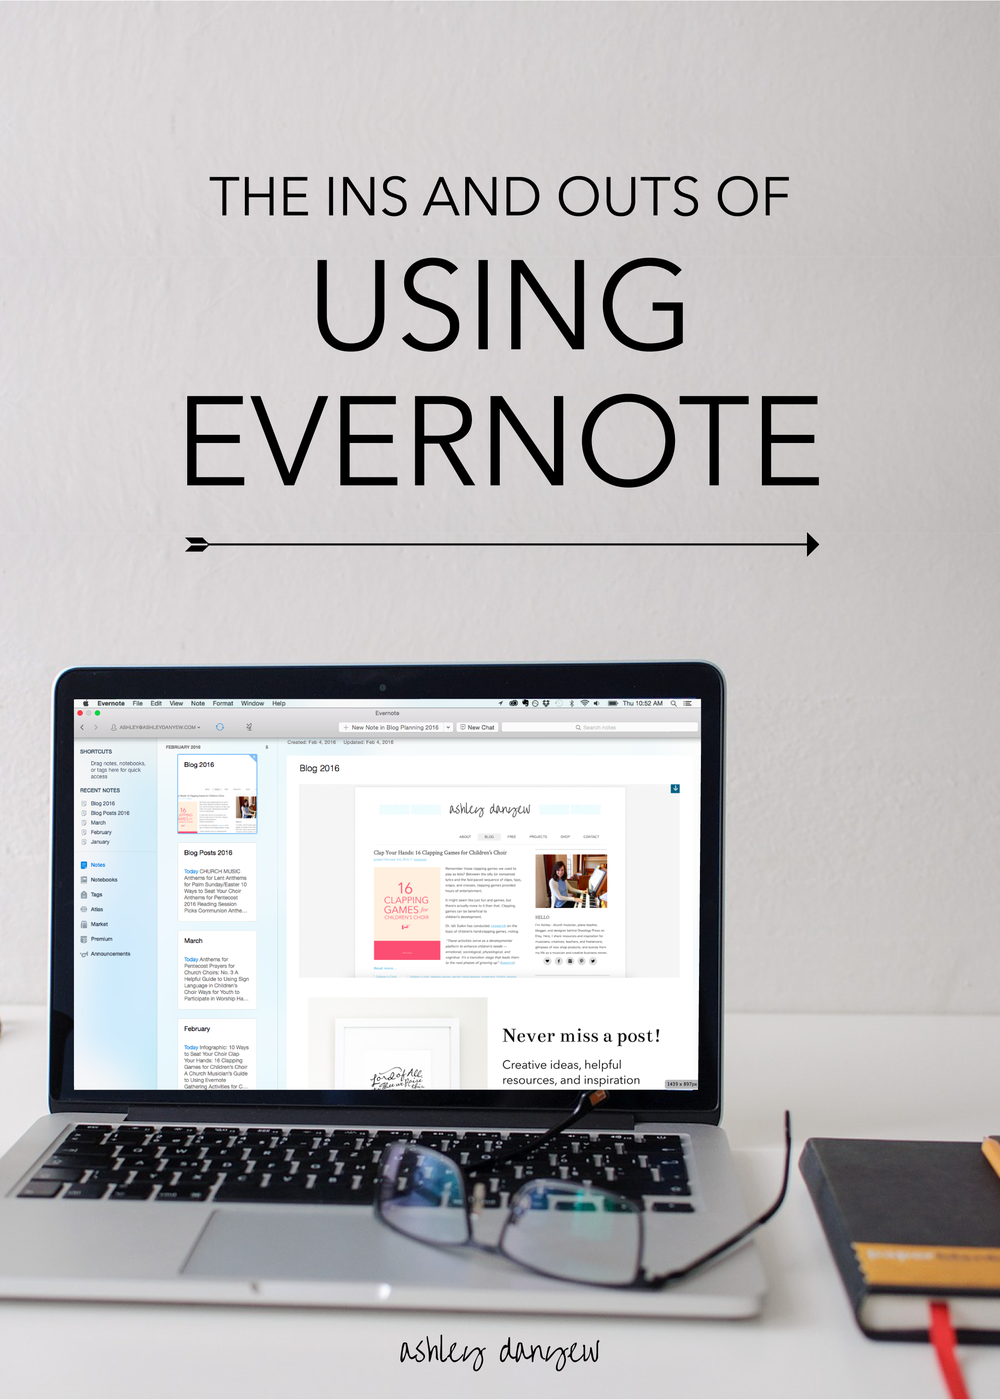 Copy of The Ins and Outs of Using Evernote